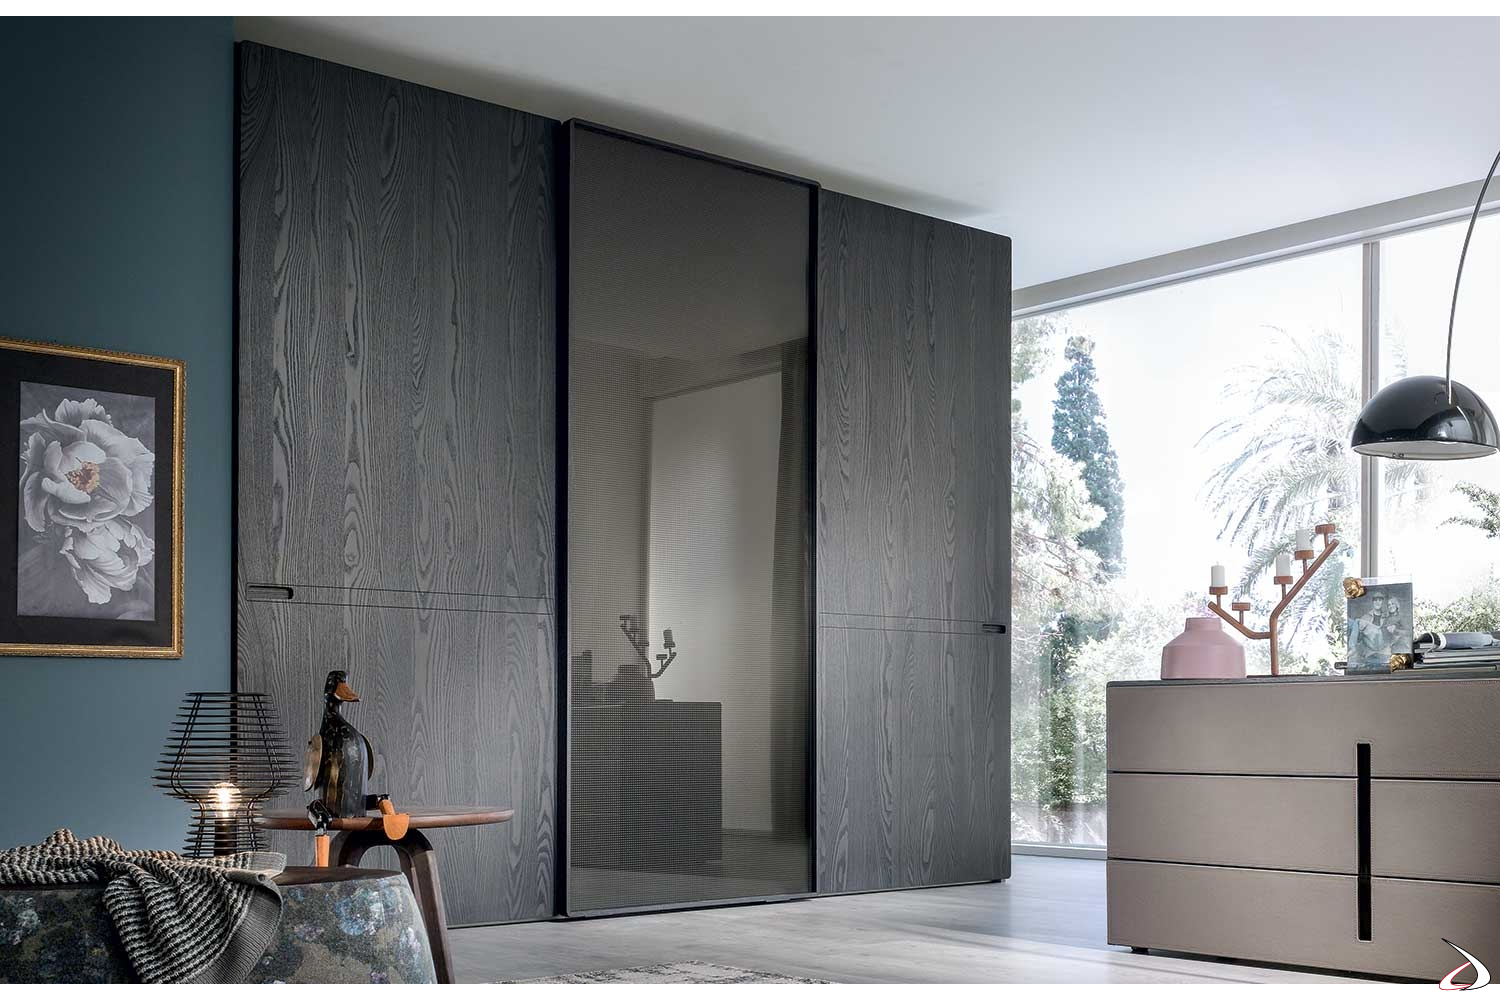 Moderno Armadio 2 Ante Scorrevoli.Customizable And Design Wardrobe With Three Sliding Doors